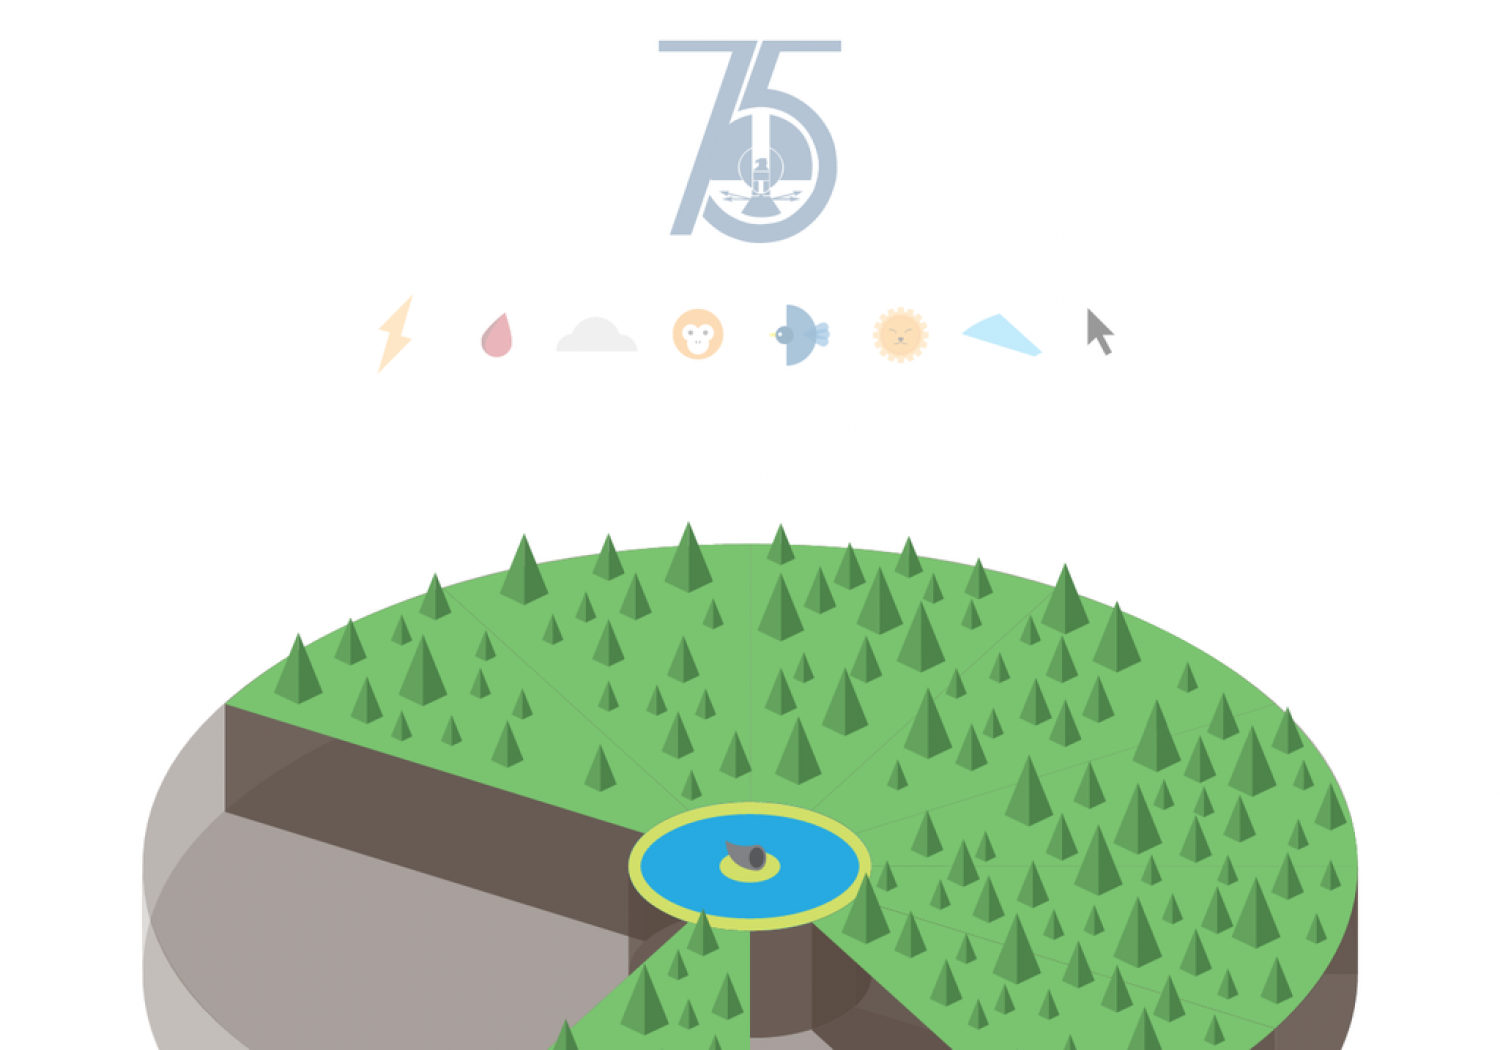 Map of the 75th Hunger Games Infographic